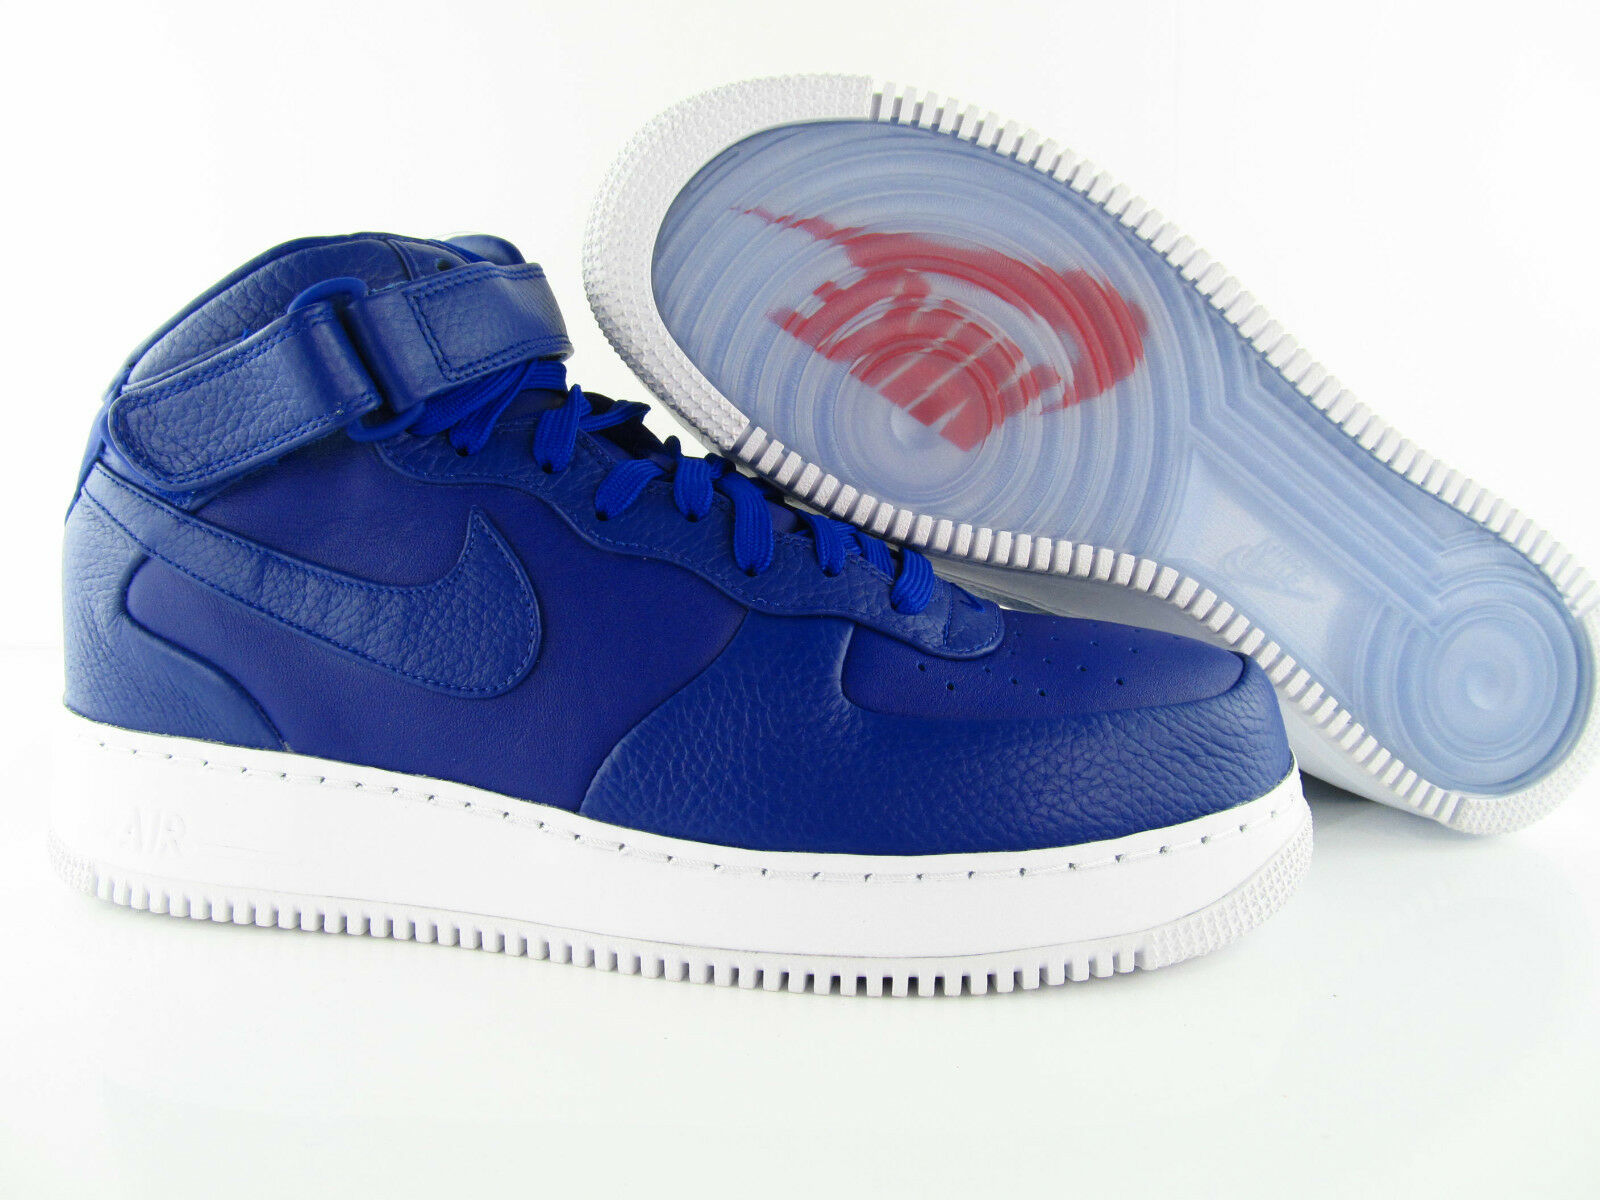 Nike Air Force 1 MID Nikelab Royal Blau Blau Rare  US_11.5 UK_10.5 Eur 45.5